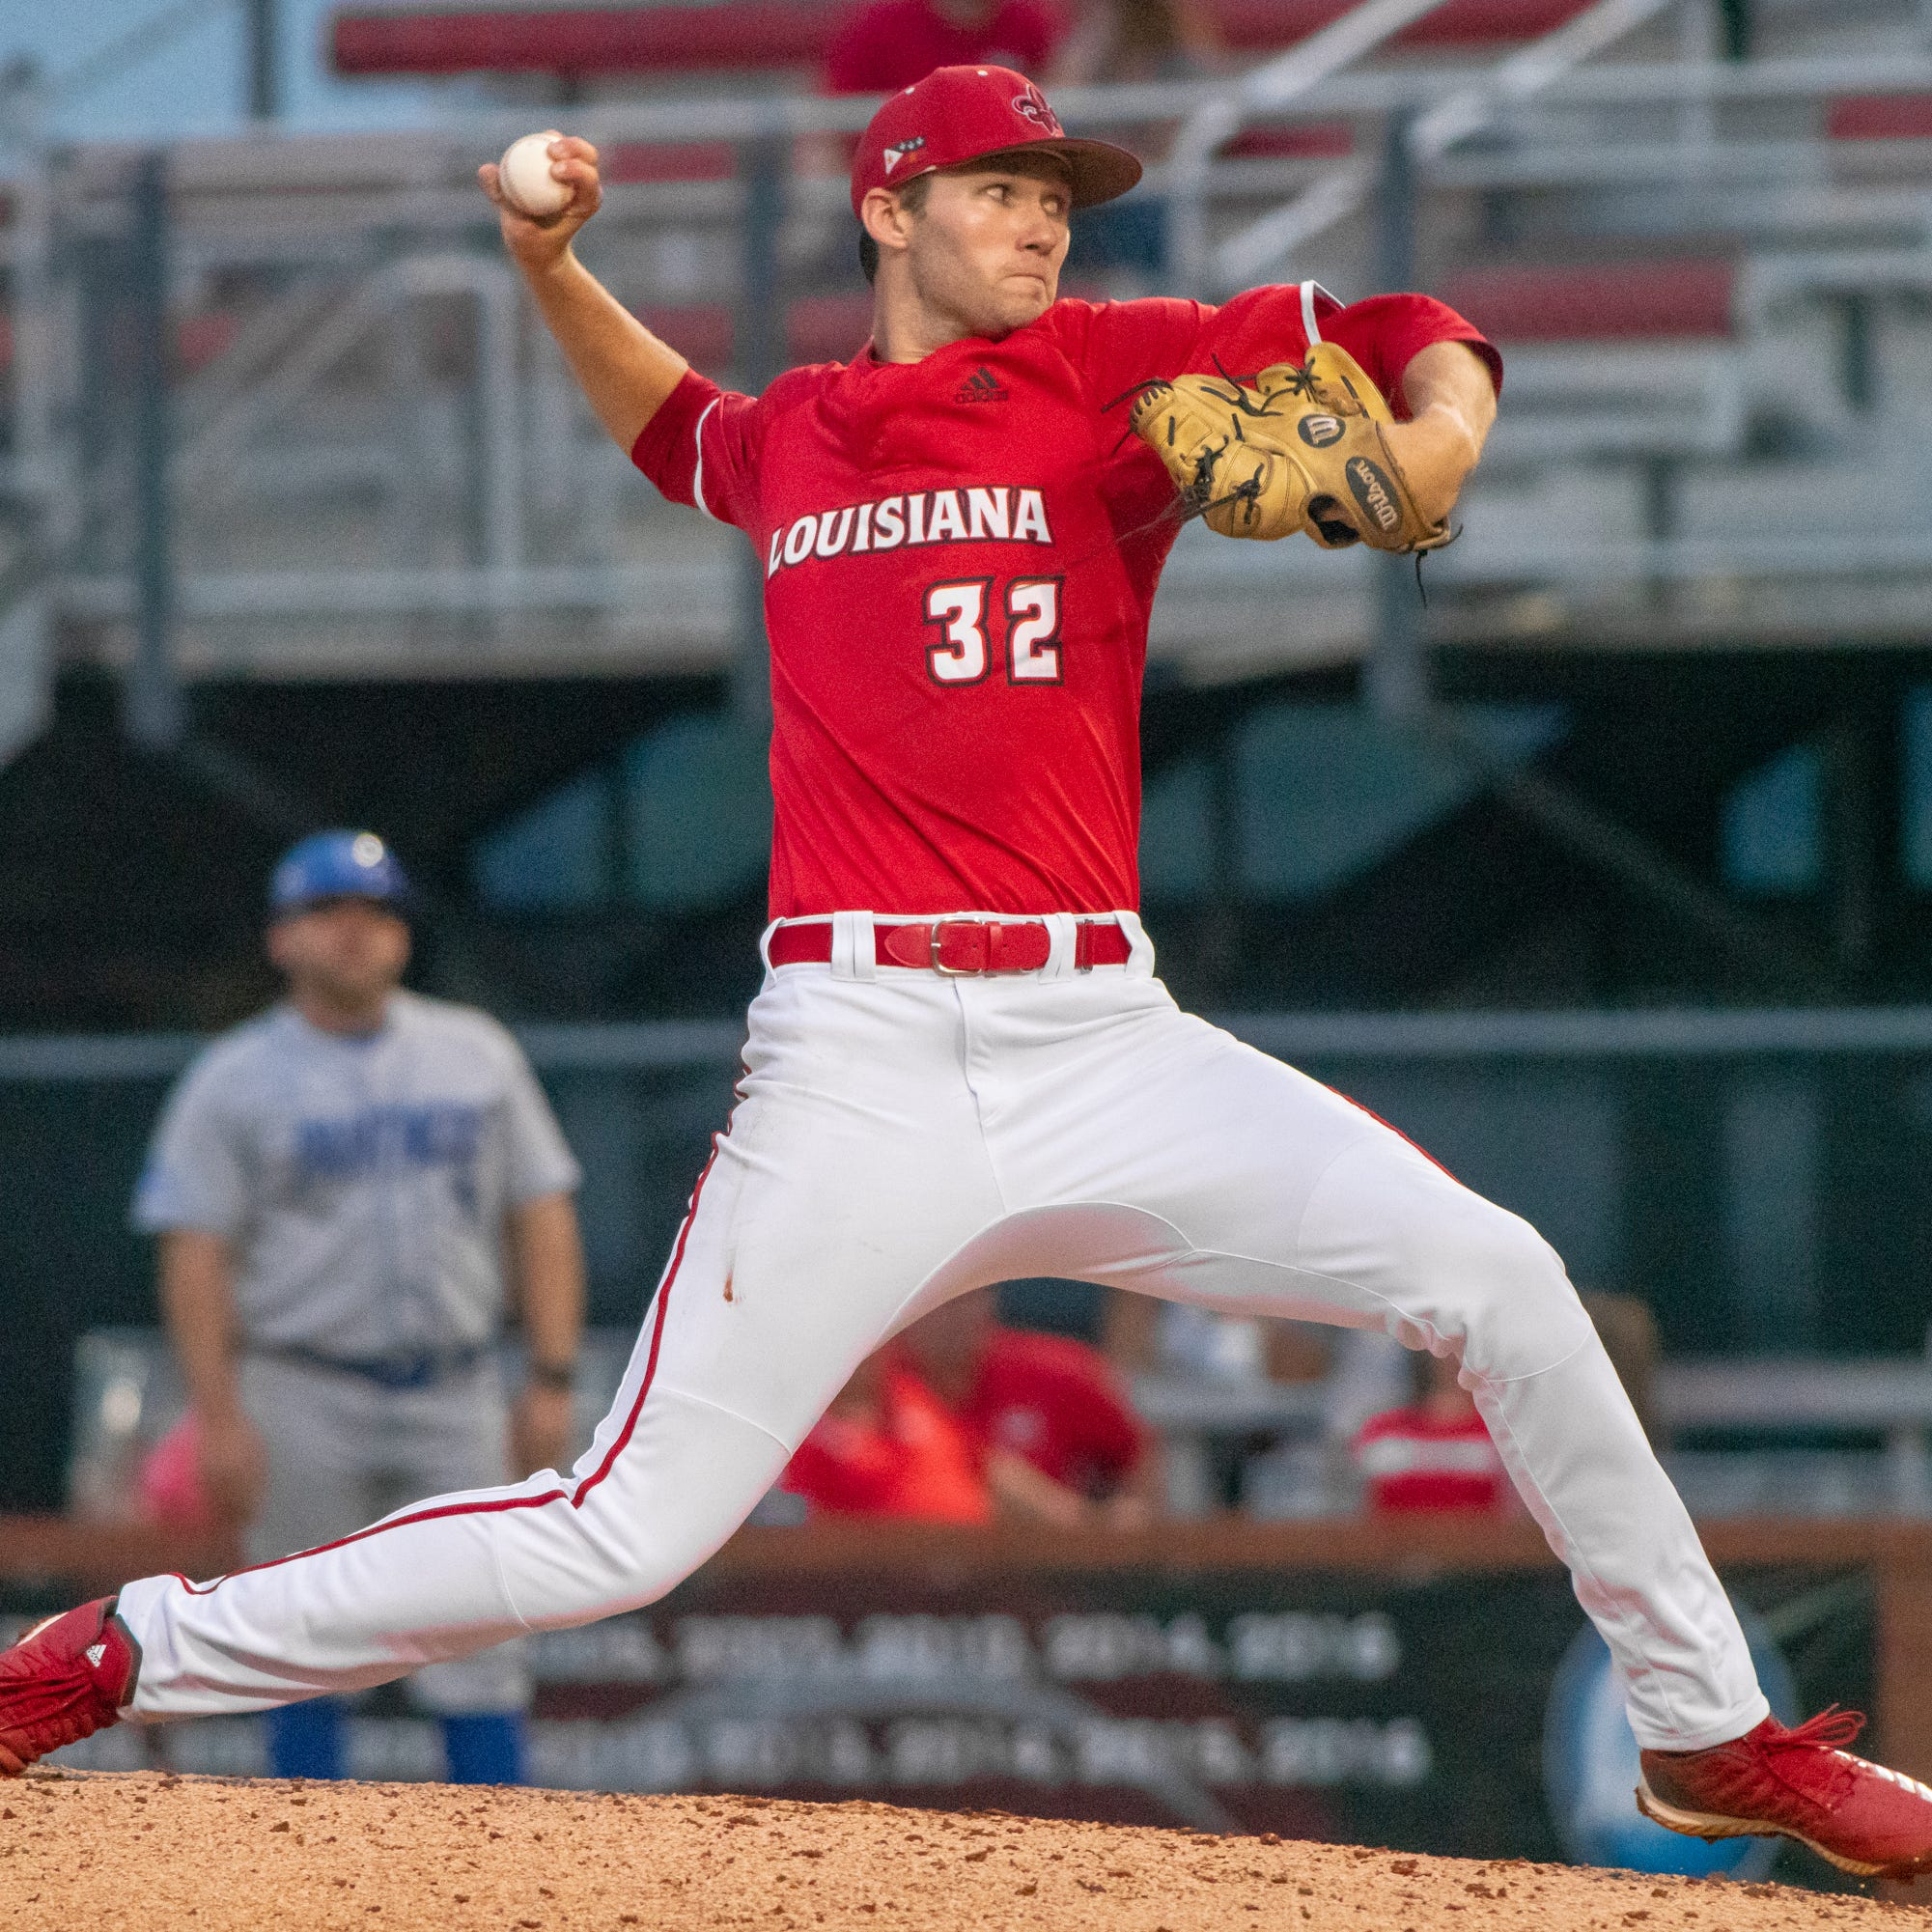 Young strikes out 10, Kasuls mule-kicks ball in UL win